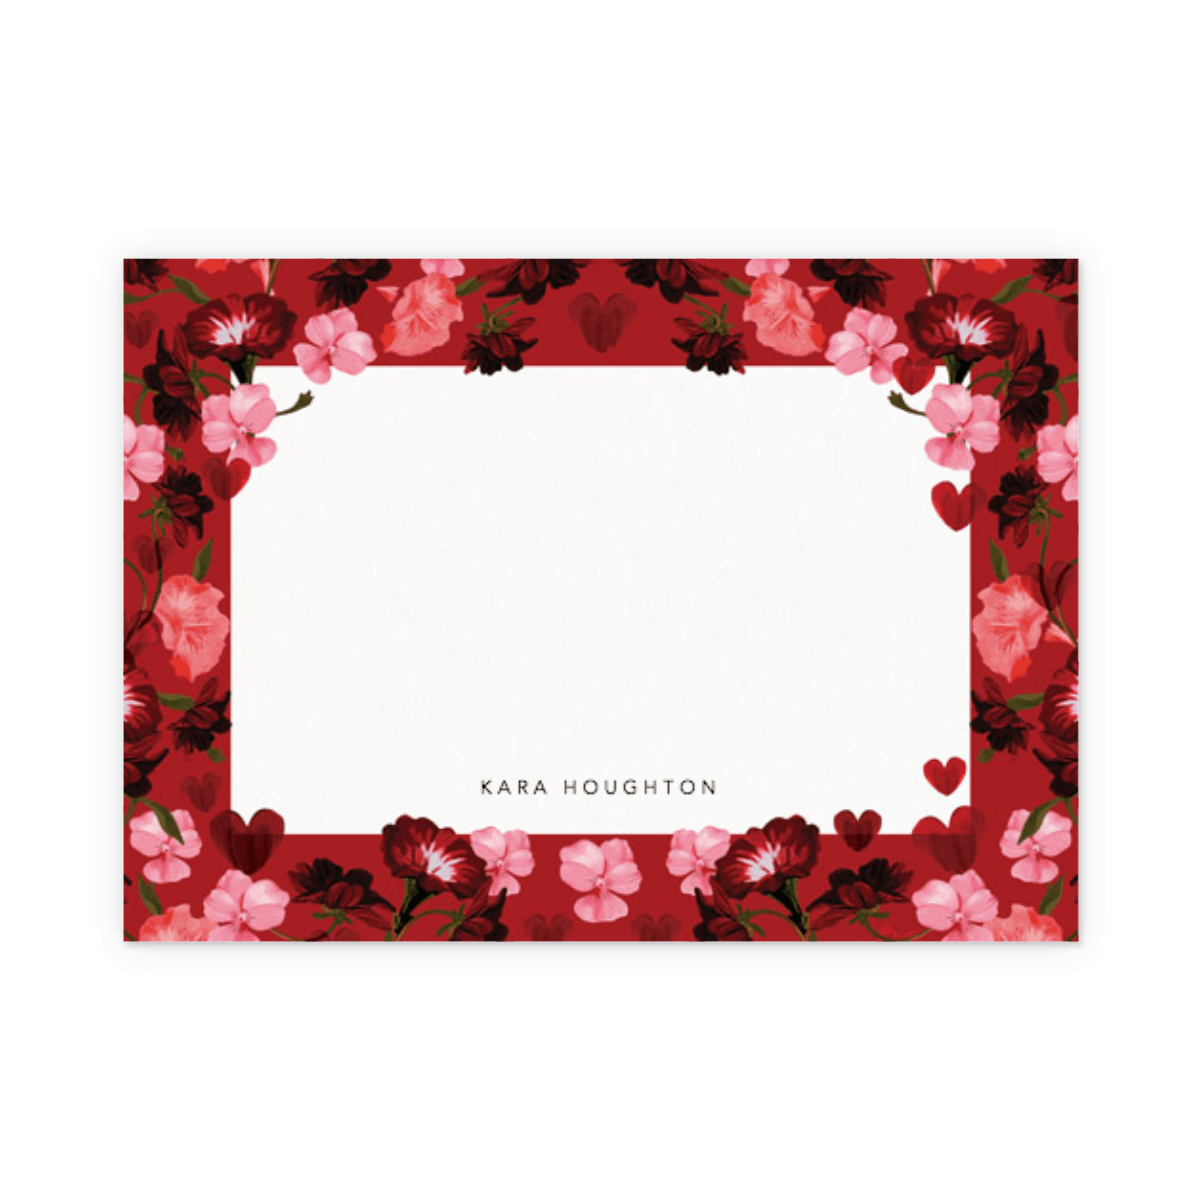 Https%3a%2f%2fwww.papier.com%2fproduct image%2f45362%2f10%2fvalentina red 11249 vorderseite 1551266684.png?ixlib=rb 1.1